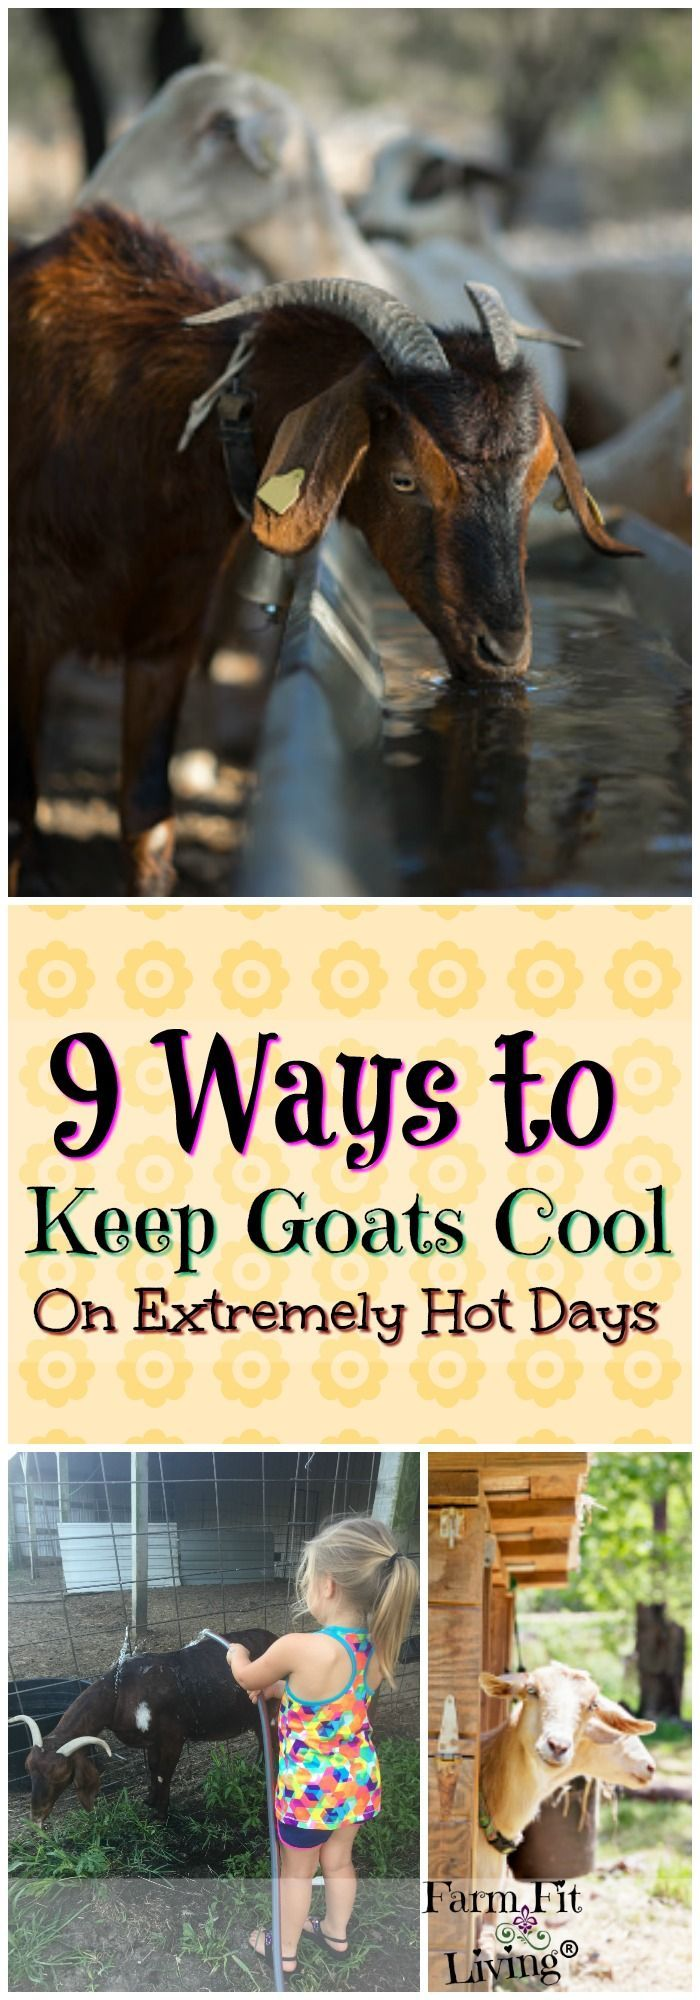 1206 Best Farm Images On Pinterest Goats Goat Farming And Pen Animal Scarer Hobby Circuits Projects Are You Looking For Ways To Keep Cool During The Scorching Heat Here